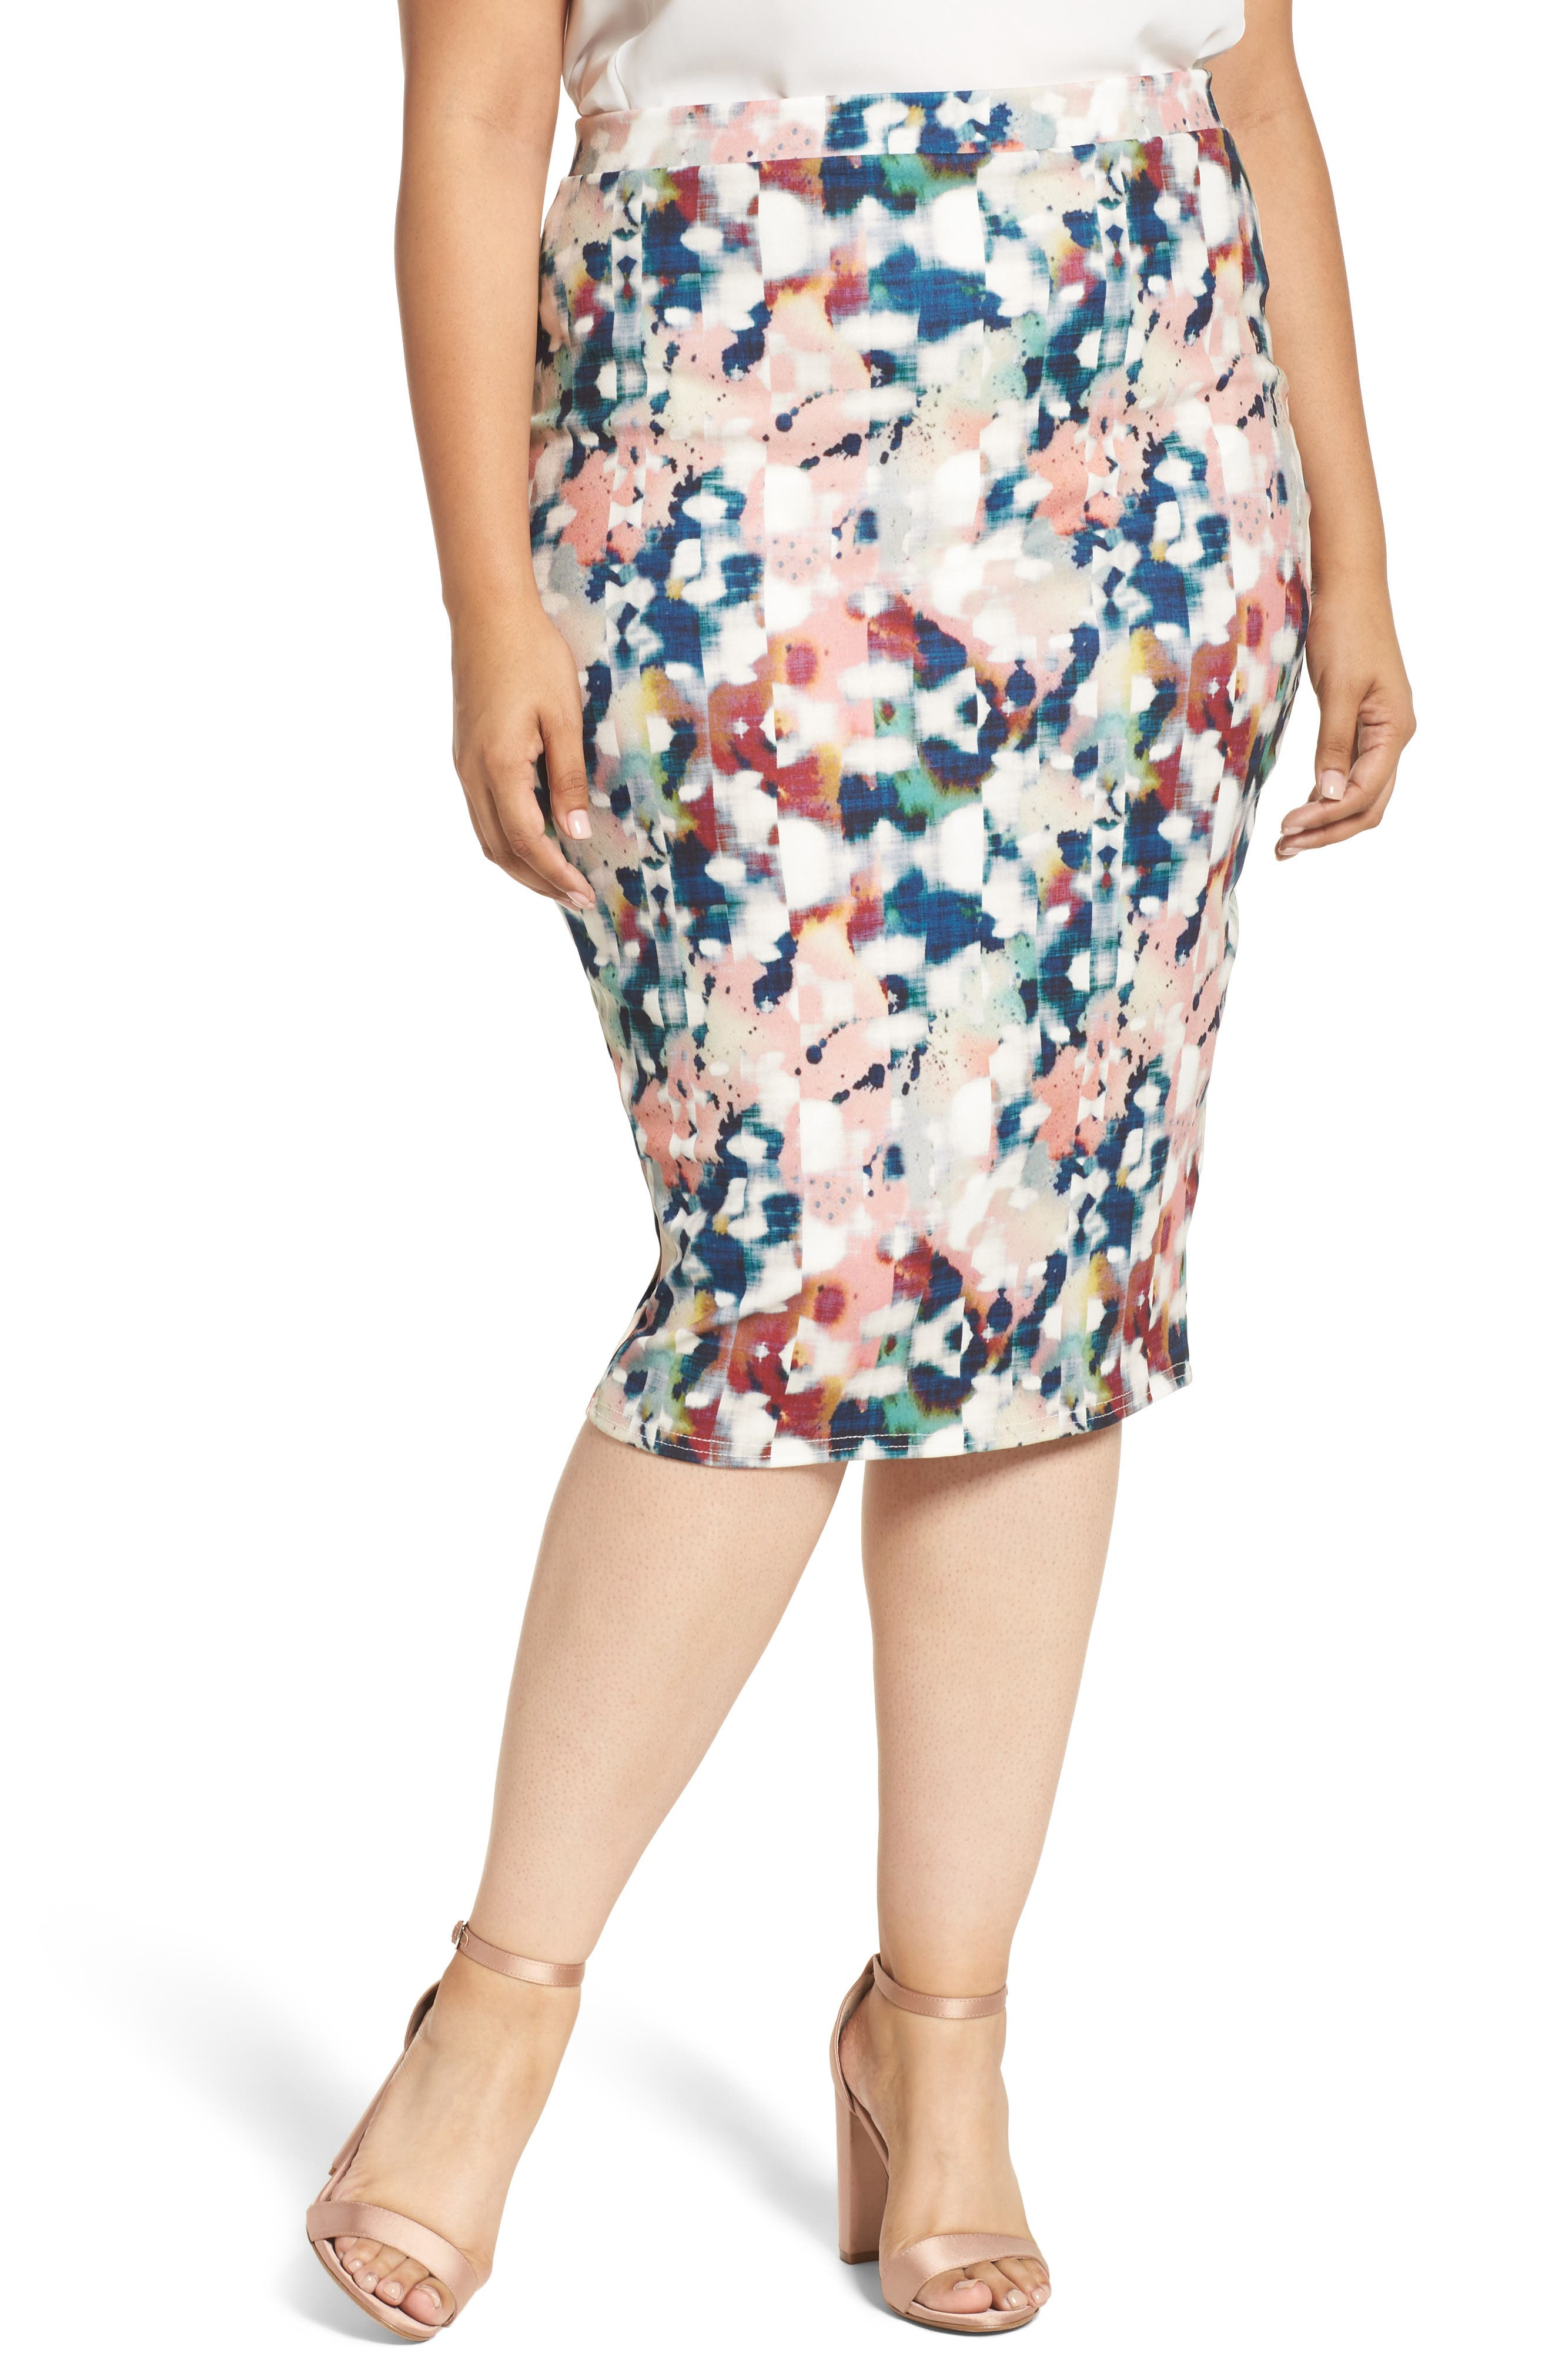 Alternate Image 1 Selected - LOST INK Abstract Print Pencil Skirt (Plus Size)